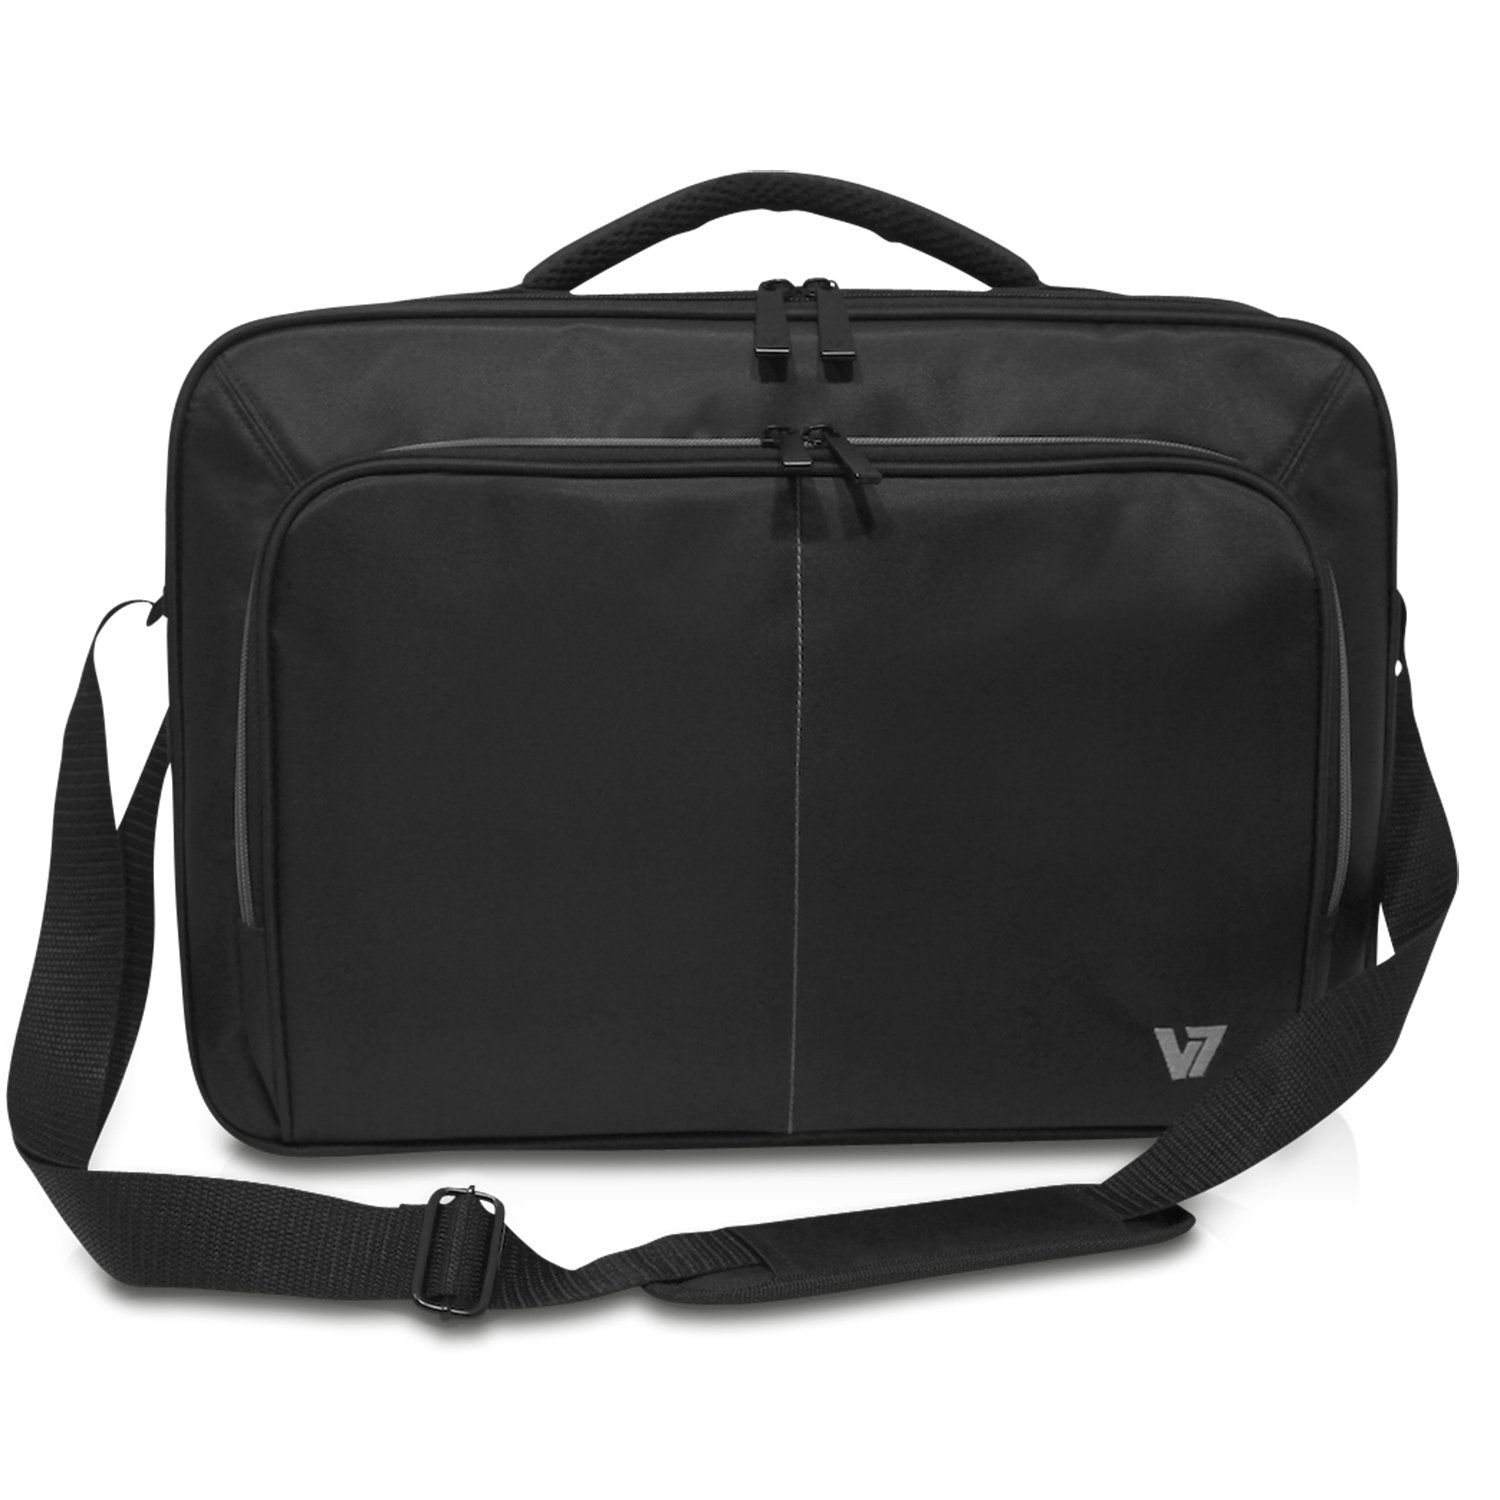 V7 CCV21 9N 16 Vantage Notebook Carrying Case